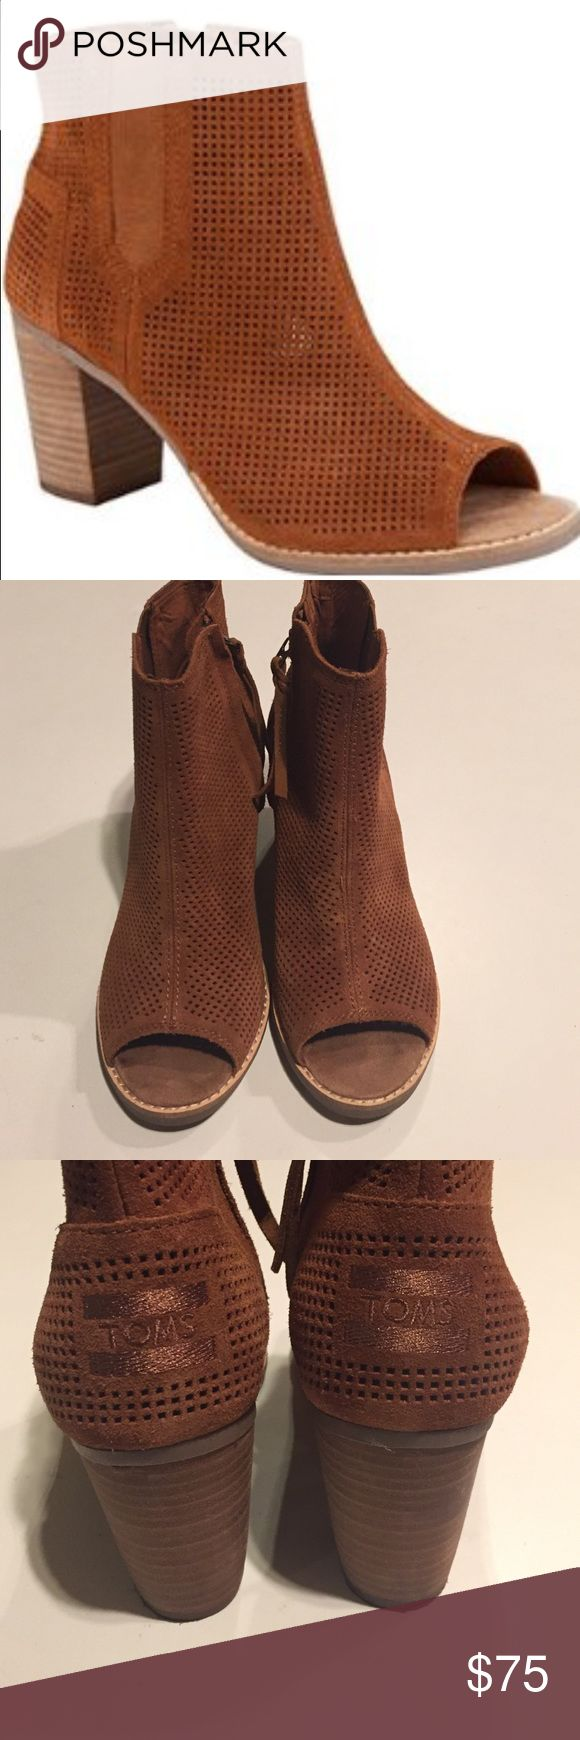 TOMS Majorca Peep Toe Booties in Cinnamon Suede TOMS Majorca Peep Toe Booties in Cinnamon Suede. Size 7.5. This was a display shoe. This color is gorgeous and perfect for fall! TOMS Shoes Ankle Boots & Booties